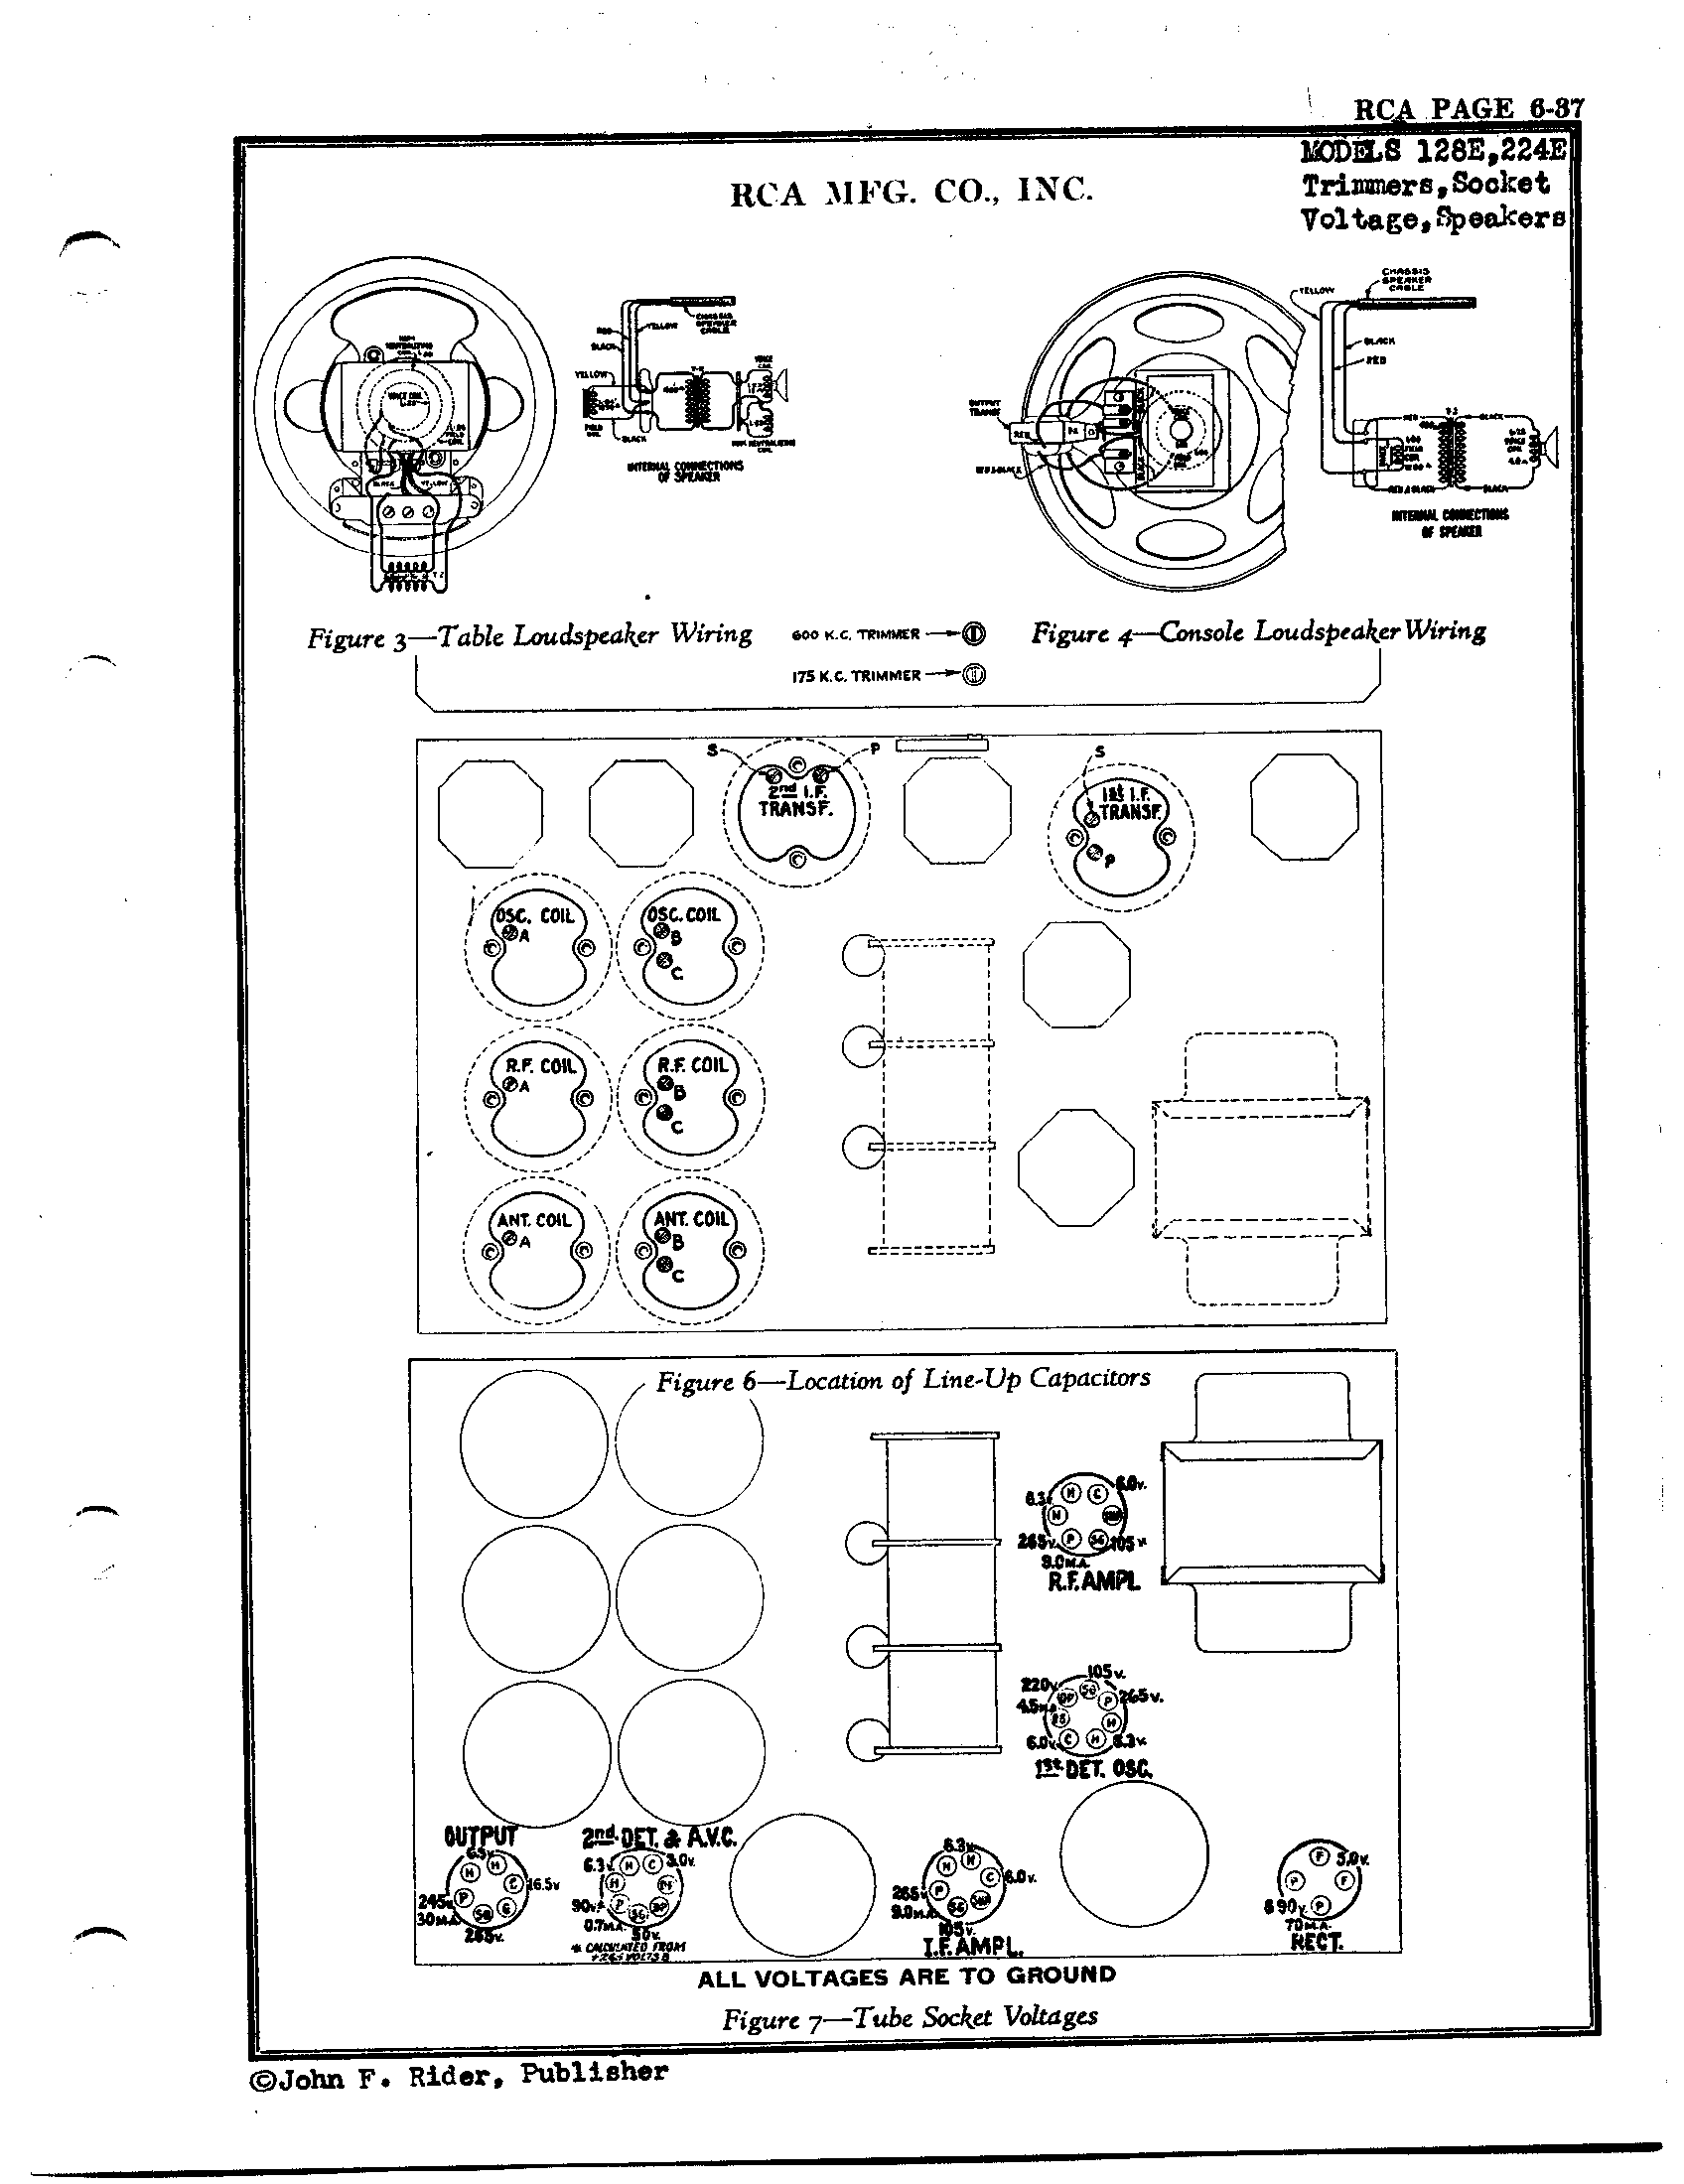 Rca Victor Co Inc 224e Antique Electronic Supply Wiring Capacitors In Series Page 3 5368 Kb Rider Manual Volume 6